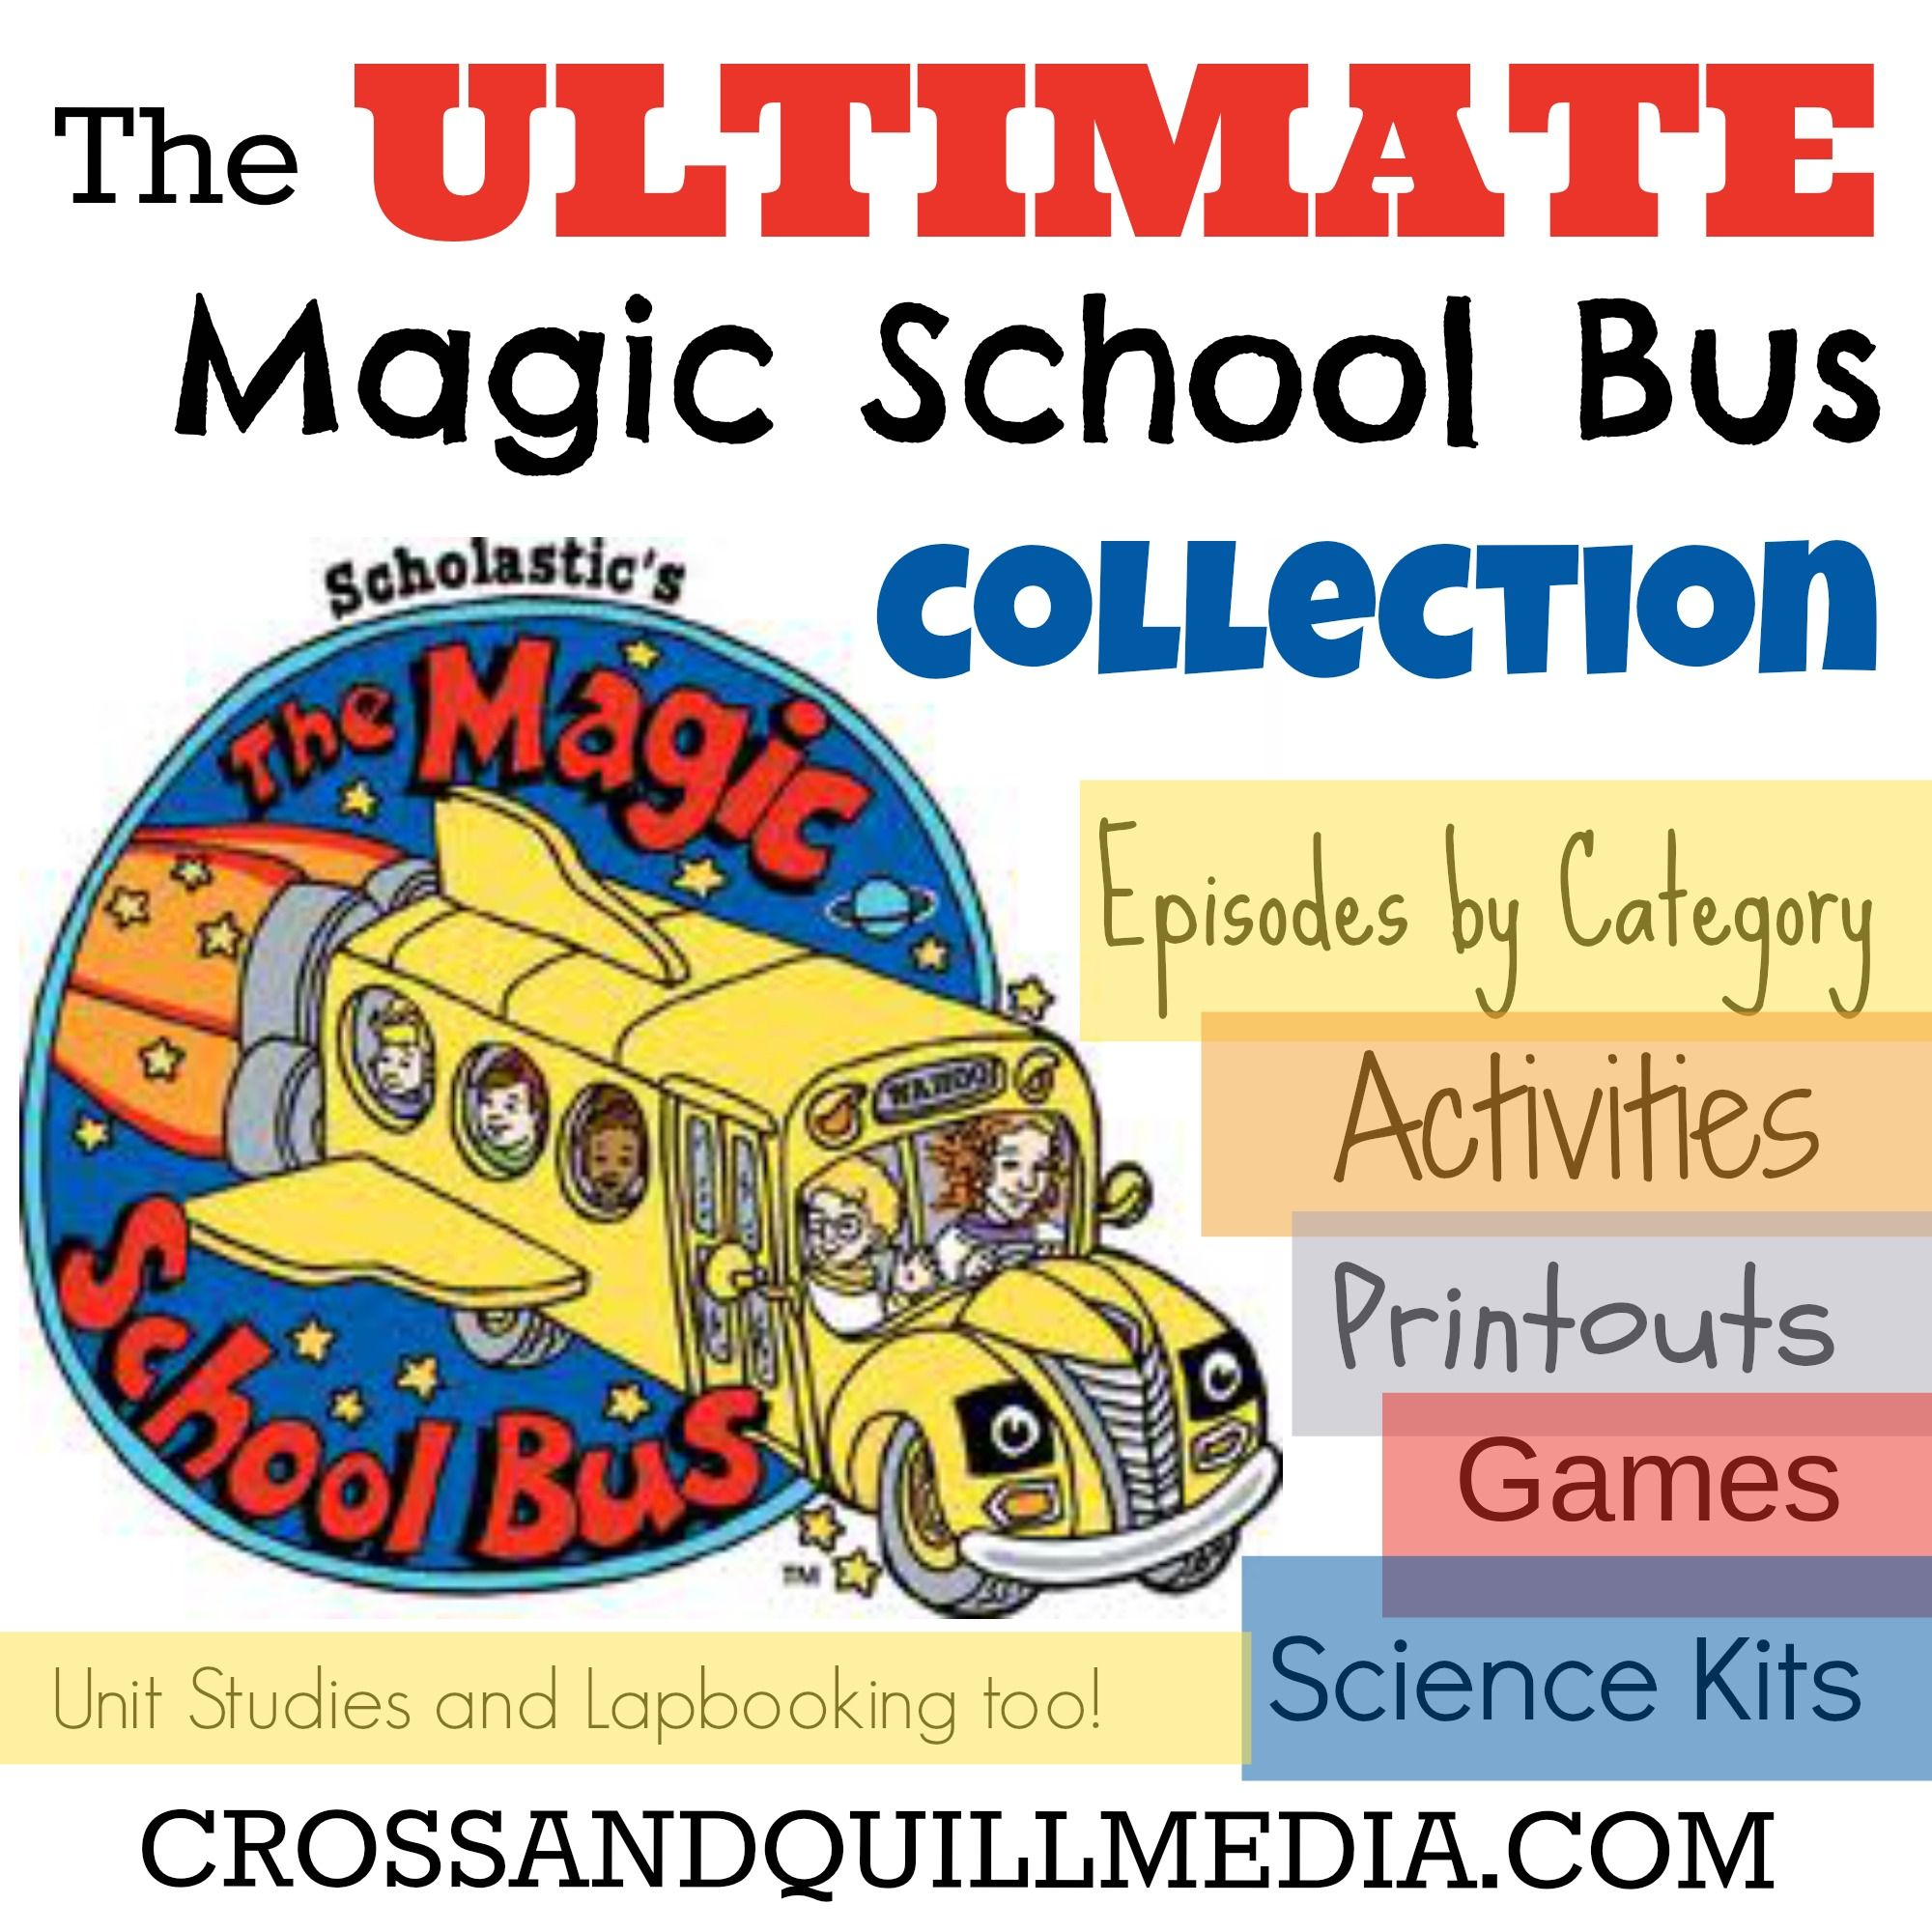 Have You Seen The ULTIMATE Magic School Bus Curriculum Resource See